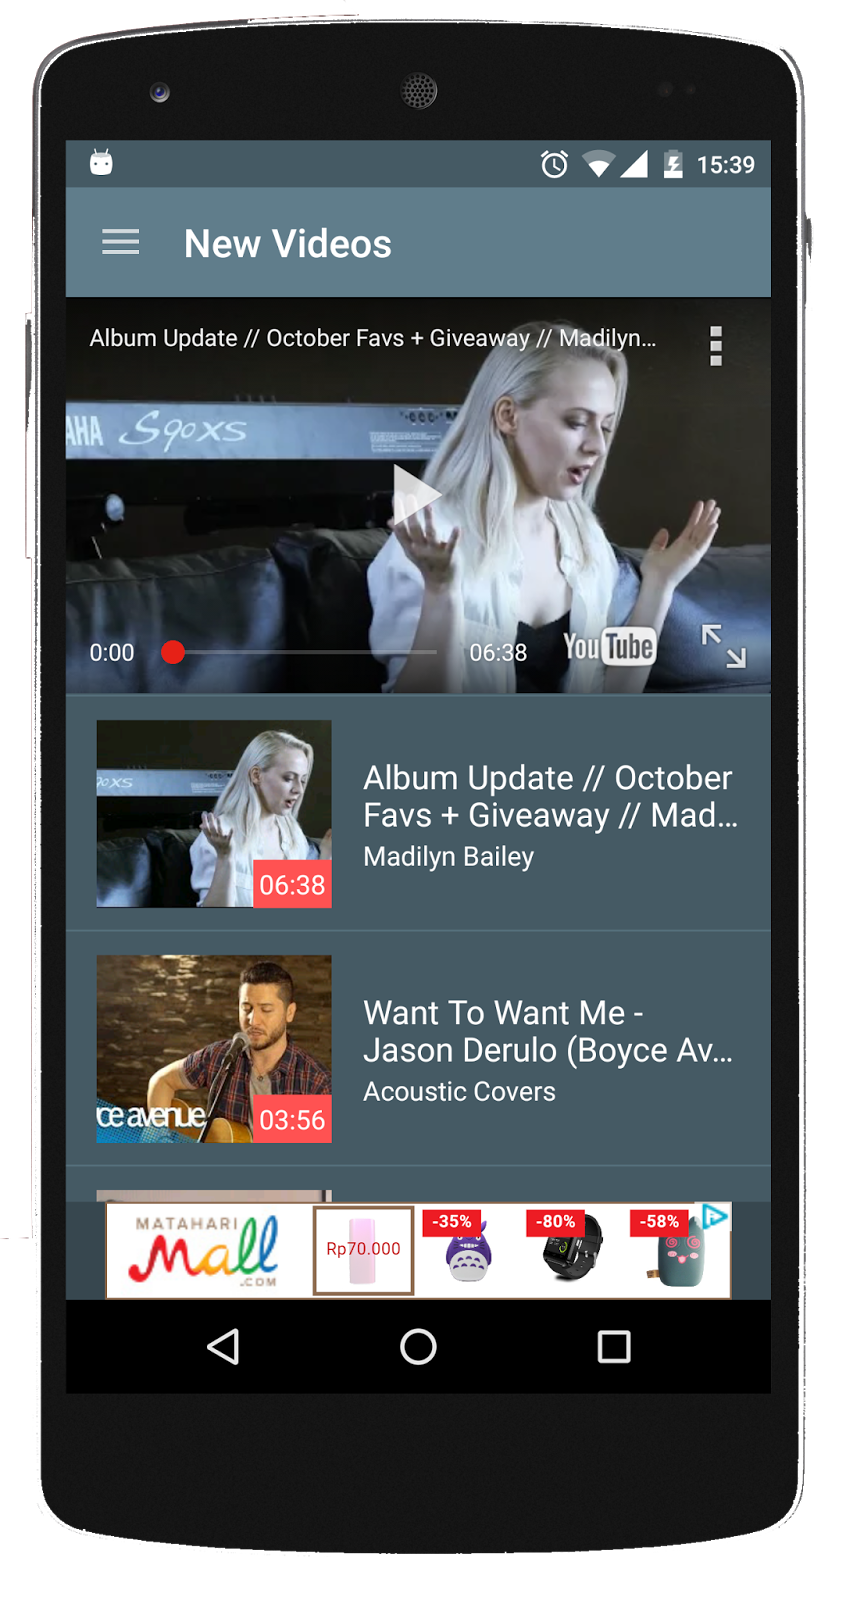 android video player app source code